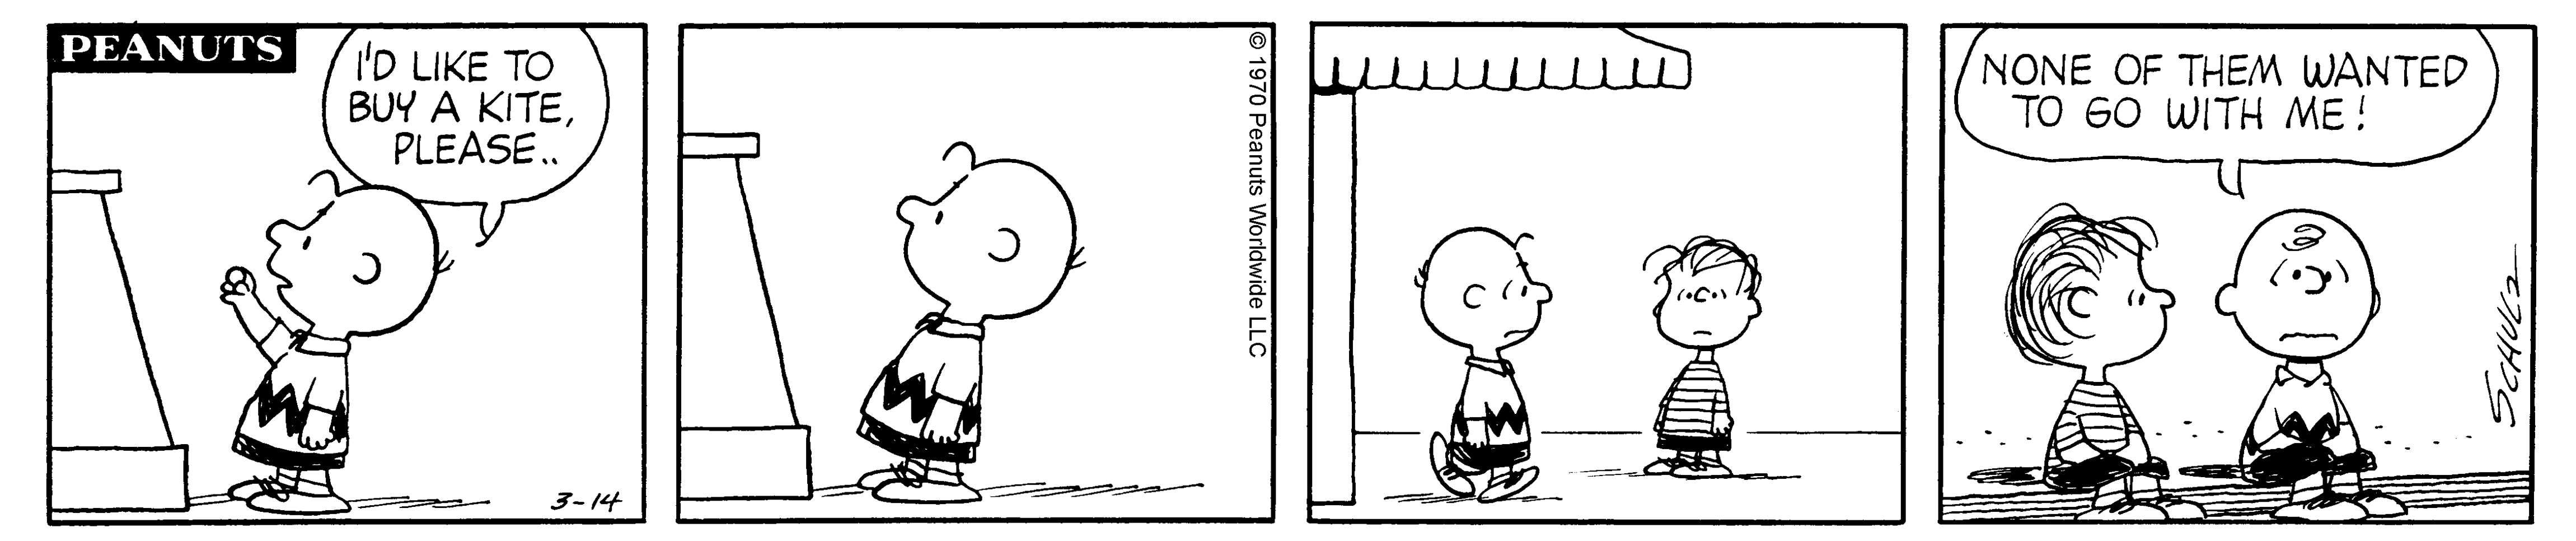 A black and white comic strip of two boys standing in front of a store.